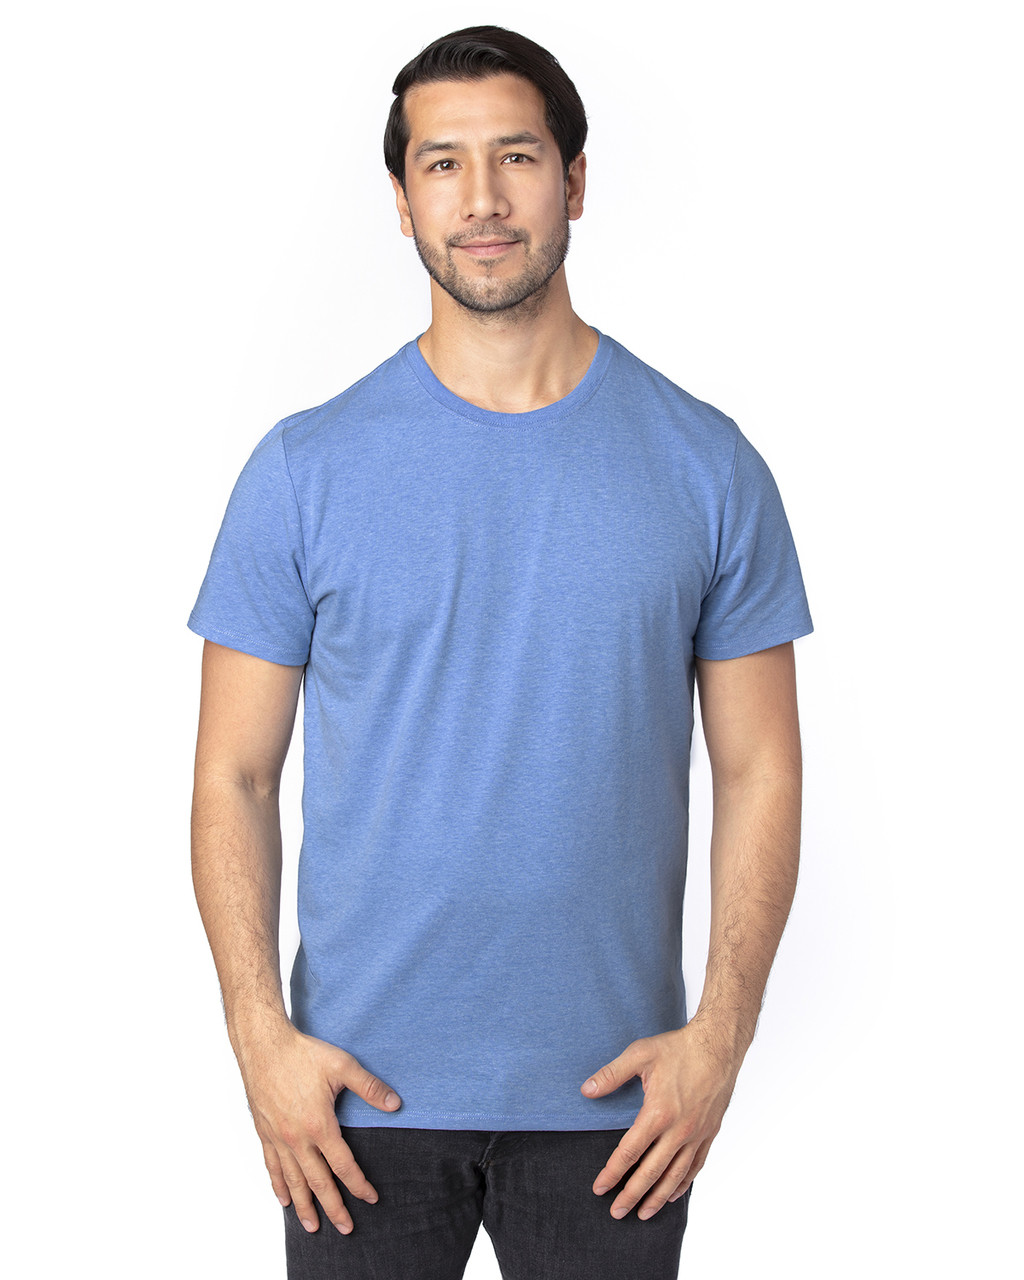 Royal Heather - 100A Threadfast Unisex Ultimate Short-Sleeve T-Shirt | BlankClothing.ca